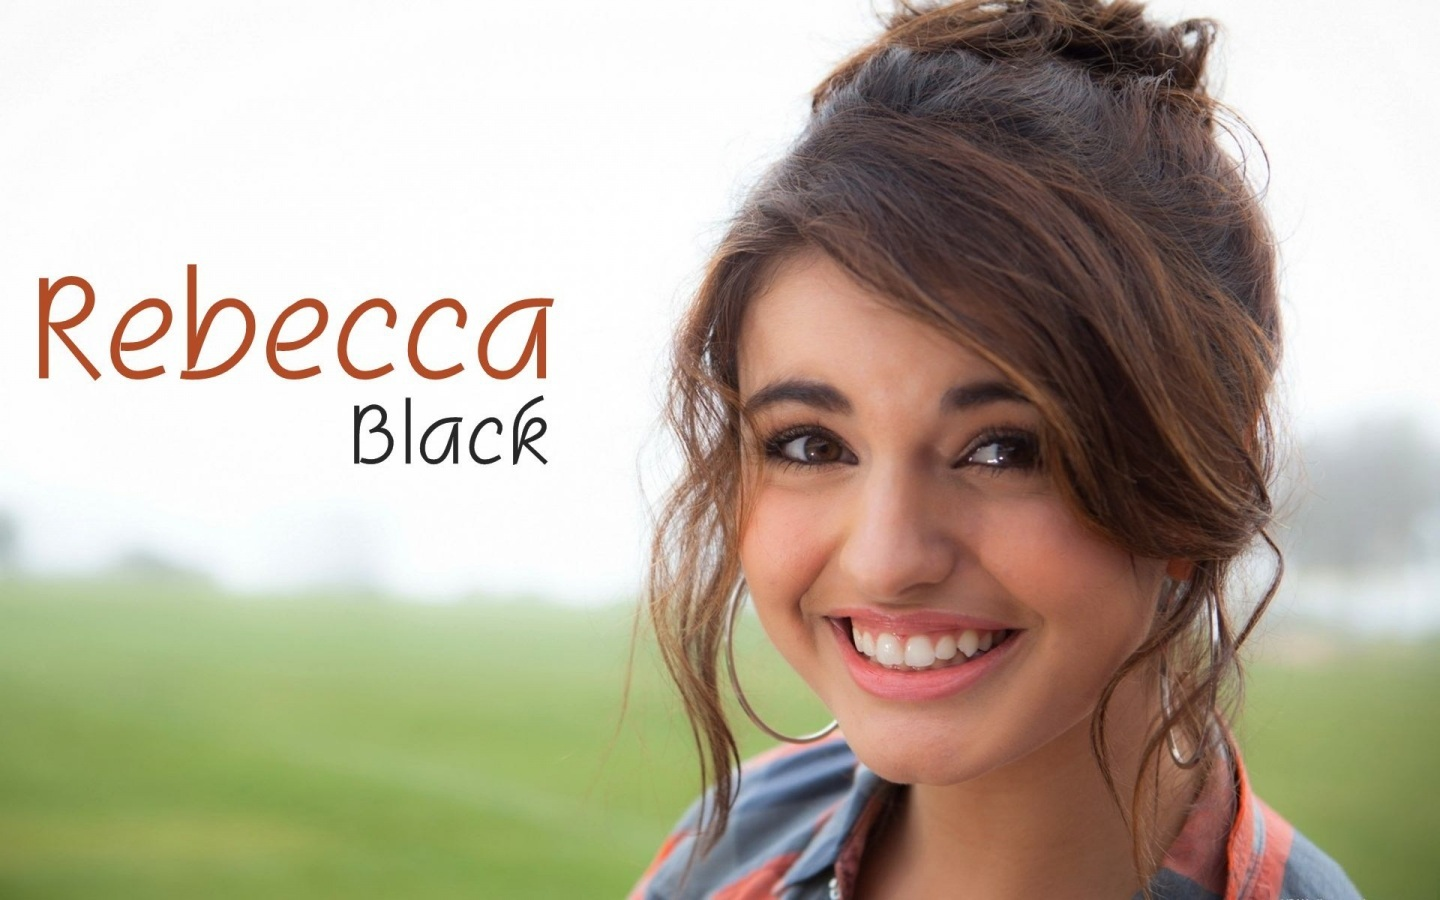 Photo Collection Wallpapers Hd Free Rebecca